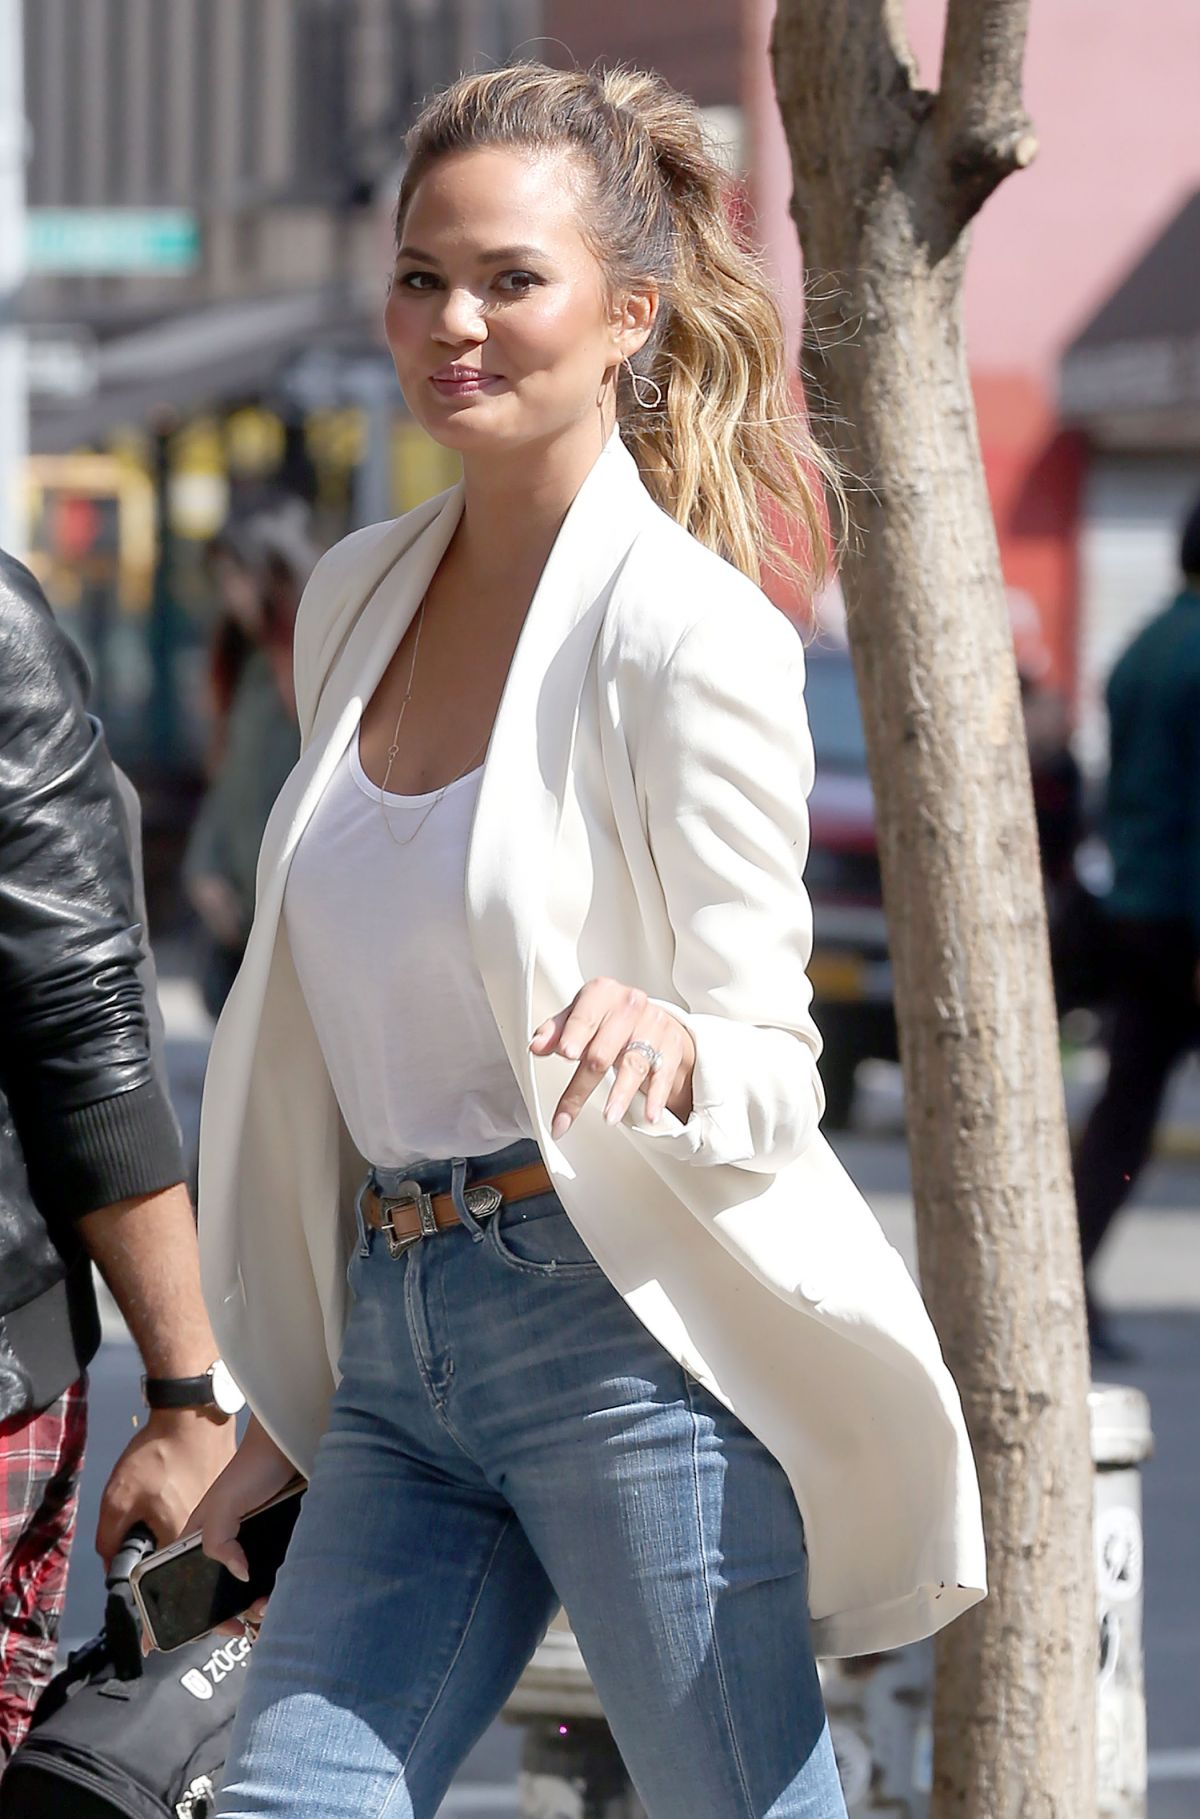 CHRISSY TEIGEN in Jeans Out and About in Los Angeles